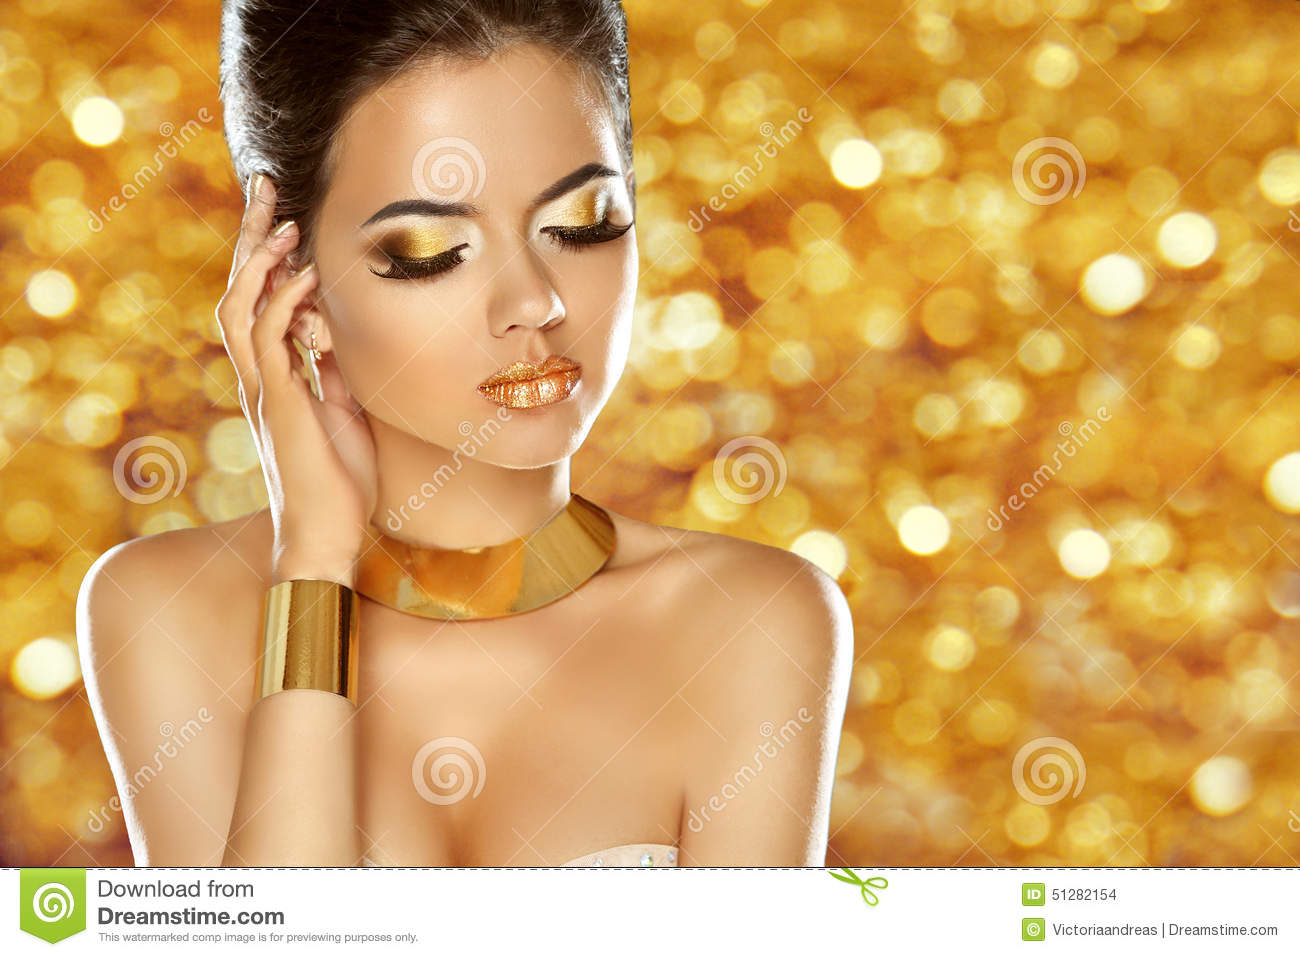 Accessories, Jewelry. Glamour Fashion Beauty Model Stock